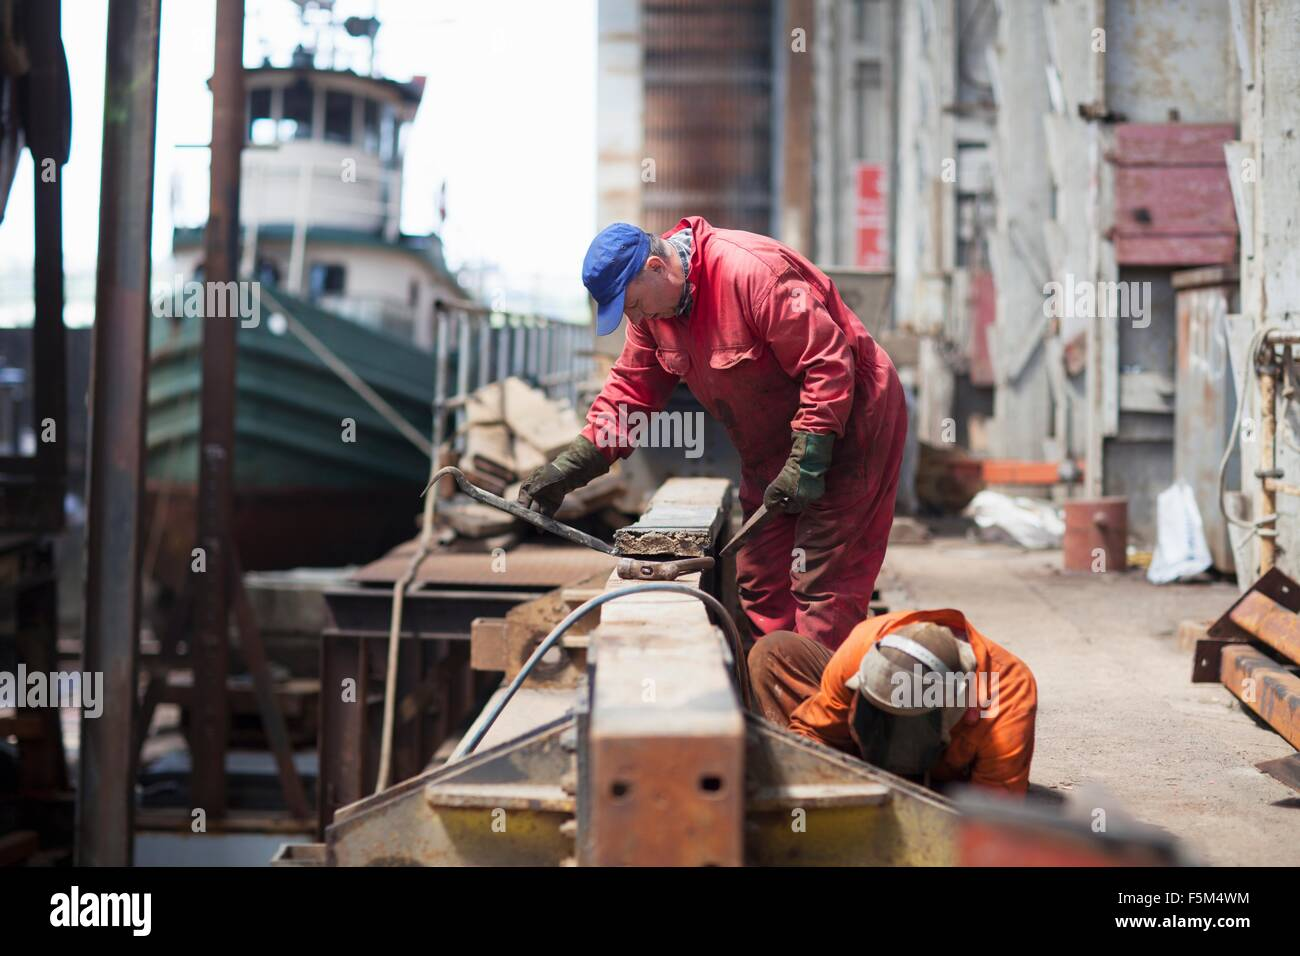 Workers doing maintenance in shipyard workshop - Stock Image